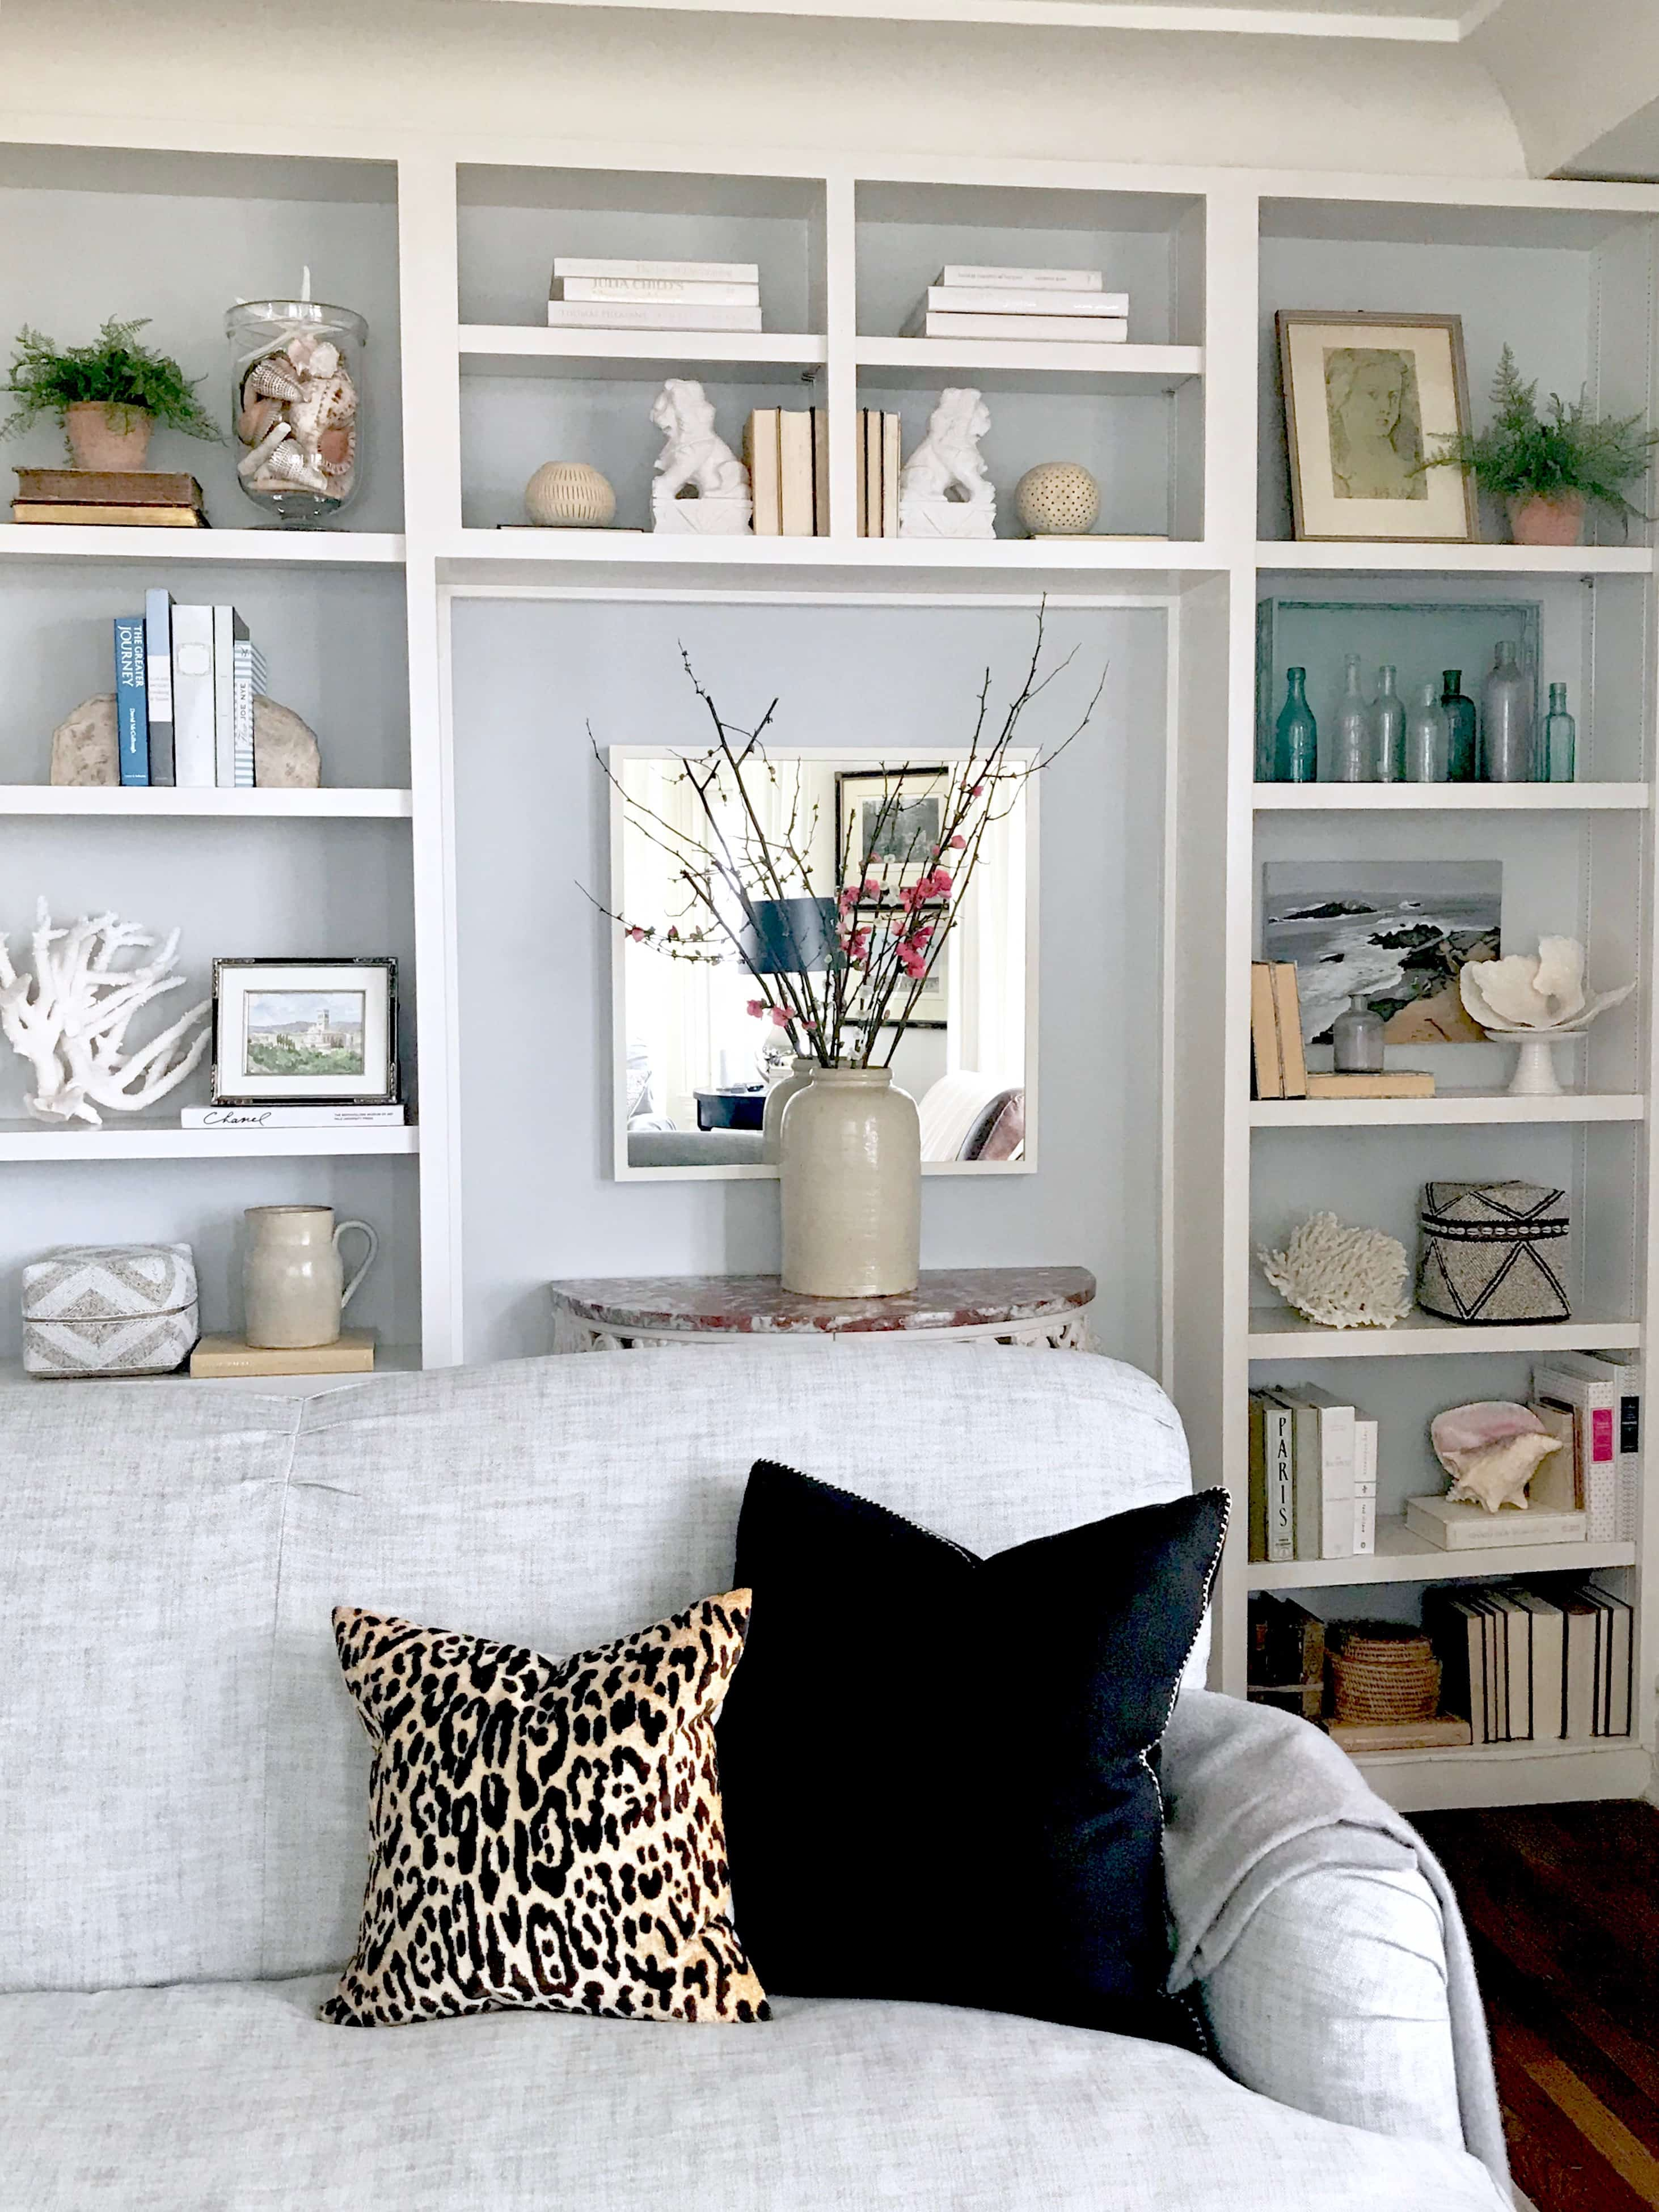 Project Design: Easy Steps To Style Your Shelves - Classic